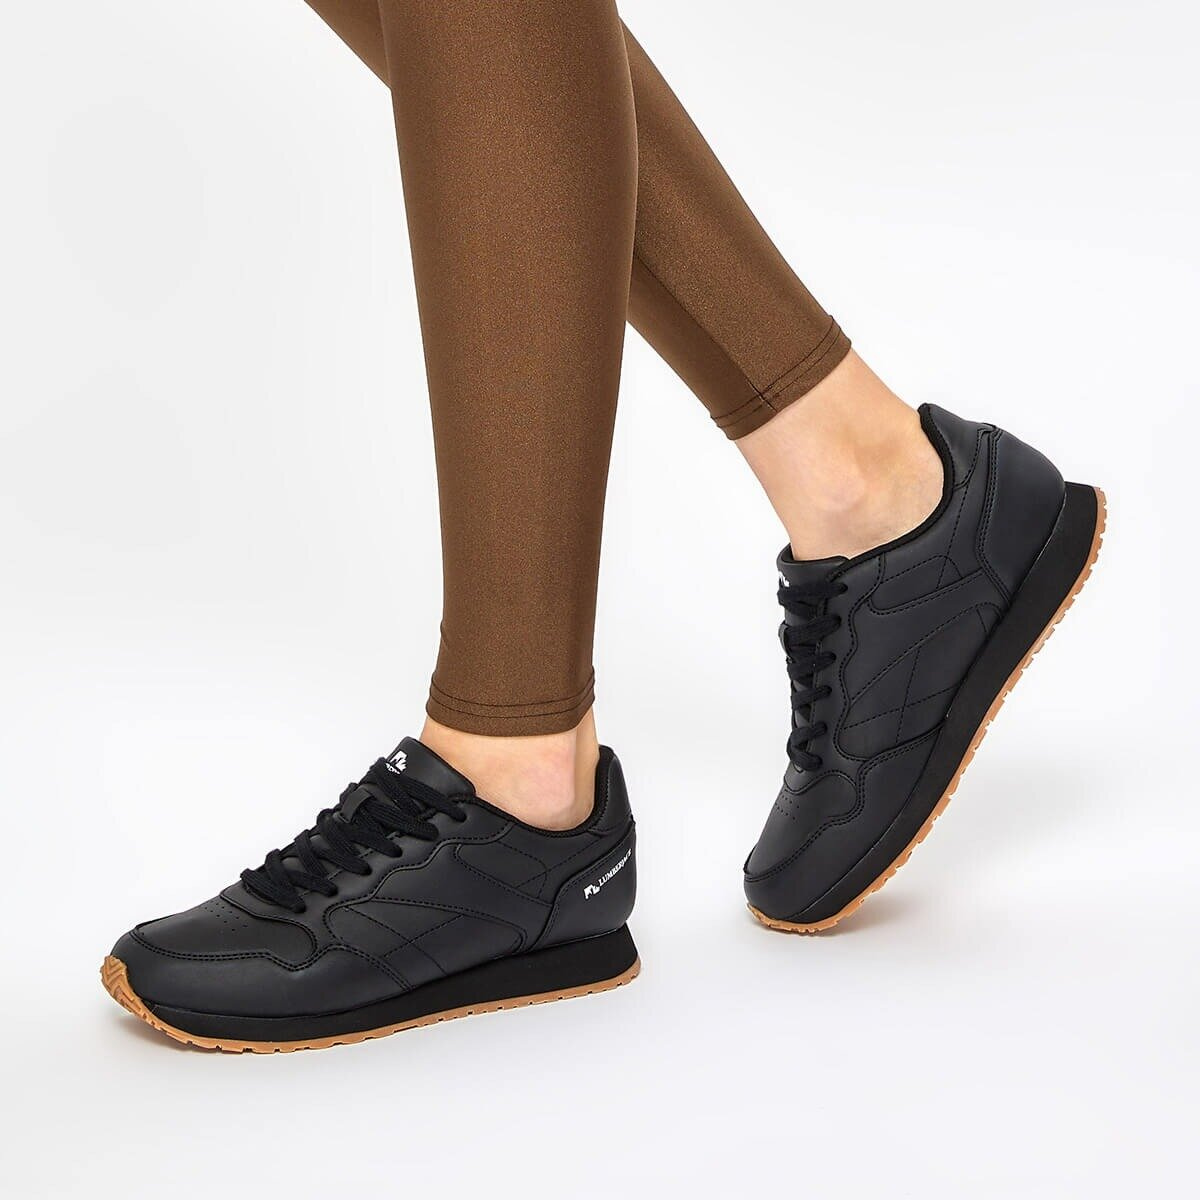 FLO HELLO WMN 9PR Black Women 'S Sneaker Shoes LUMBERJACK